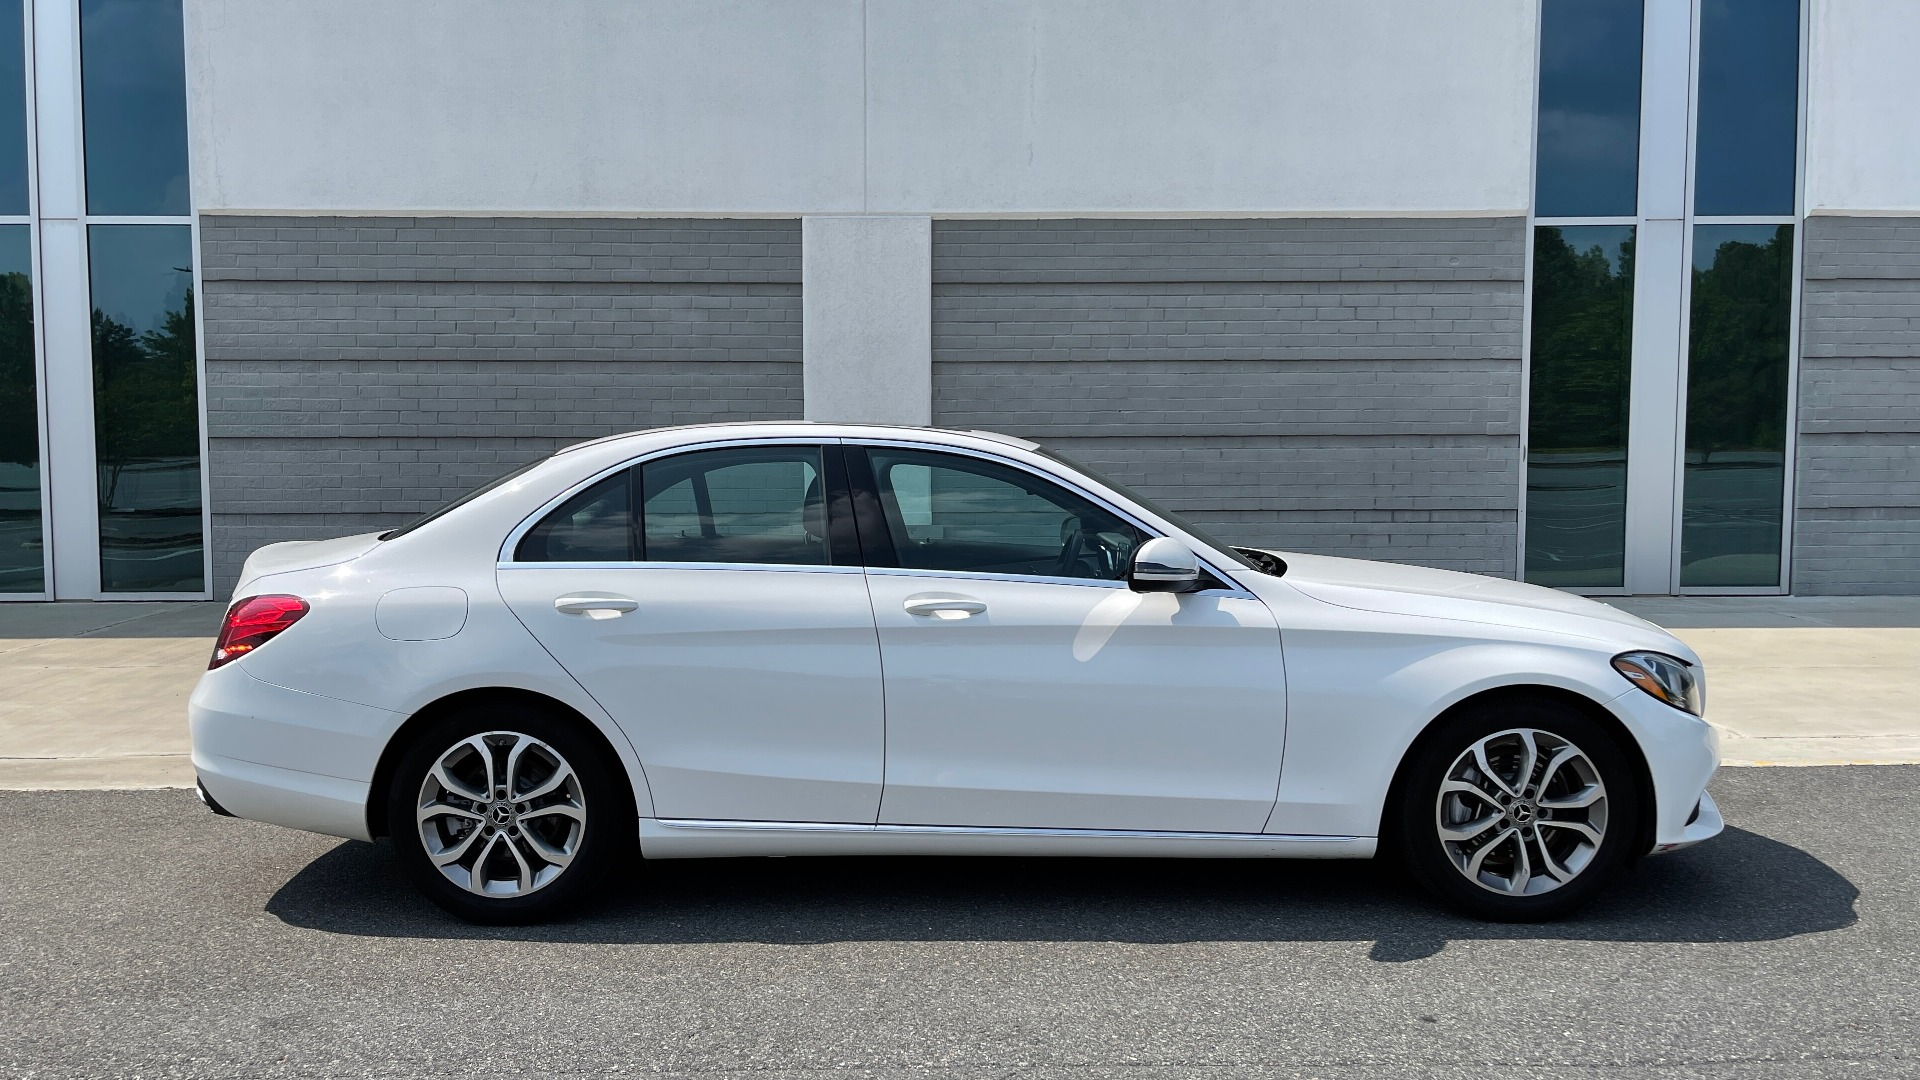 Used 2018 Mercedes-Benz C-CLASS C 300 / 2.0L / RWD / SUNROOF / APPLE~ANDROID / REARVIEW for sale $29,995 at Formula Imports in Charlotte NC 28227 7